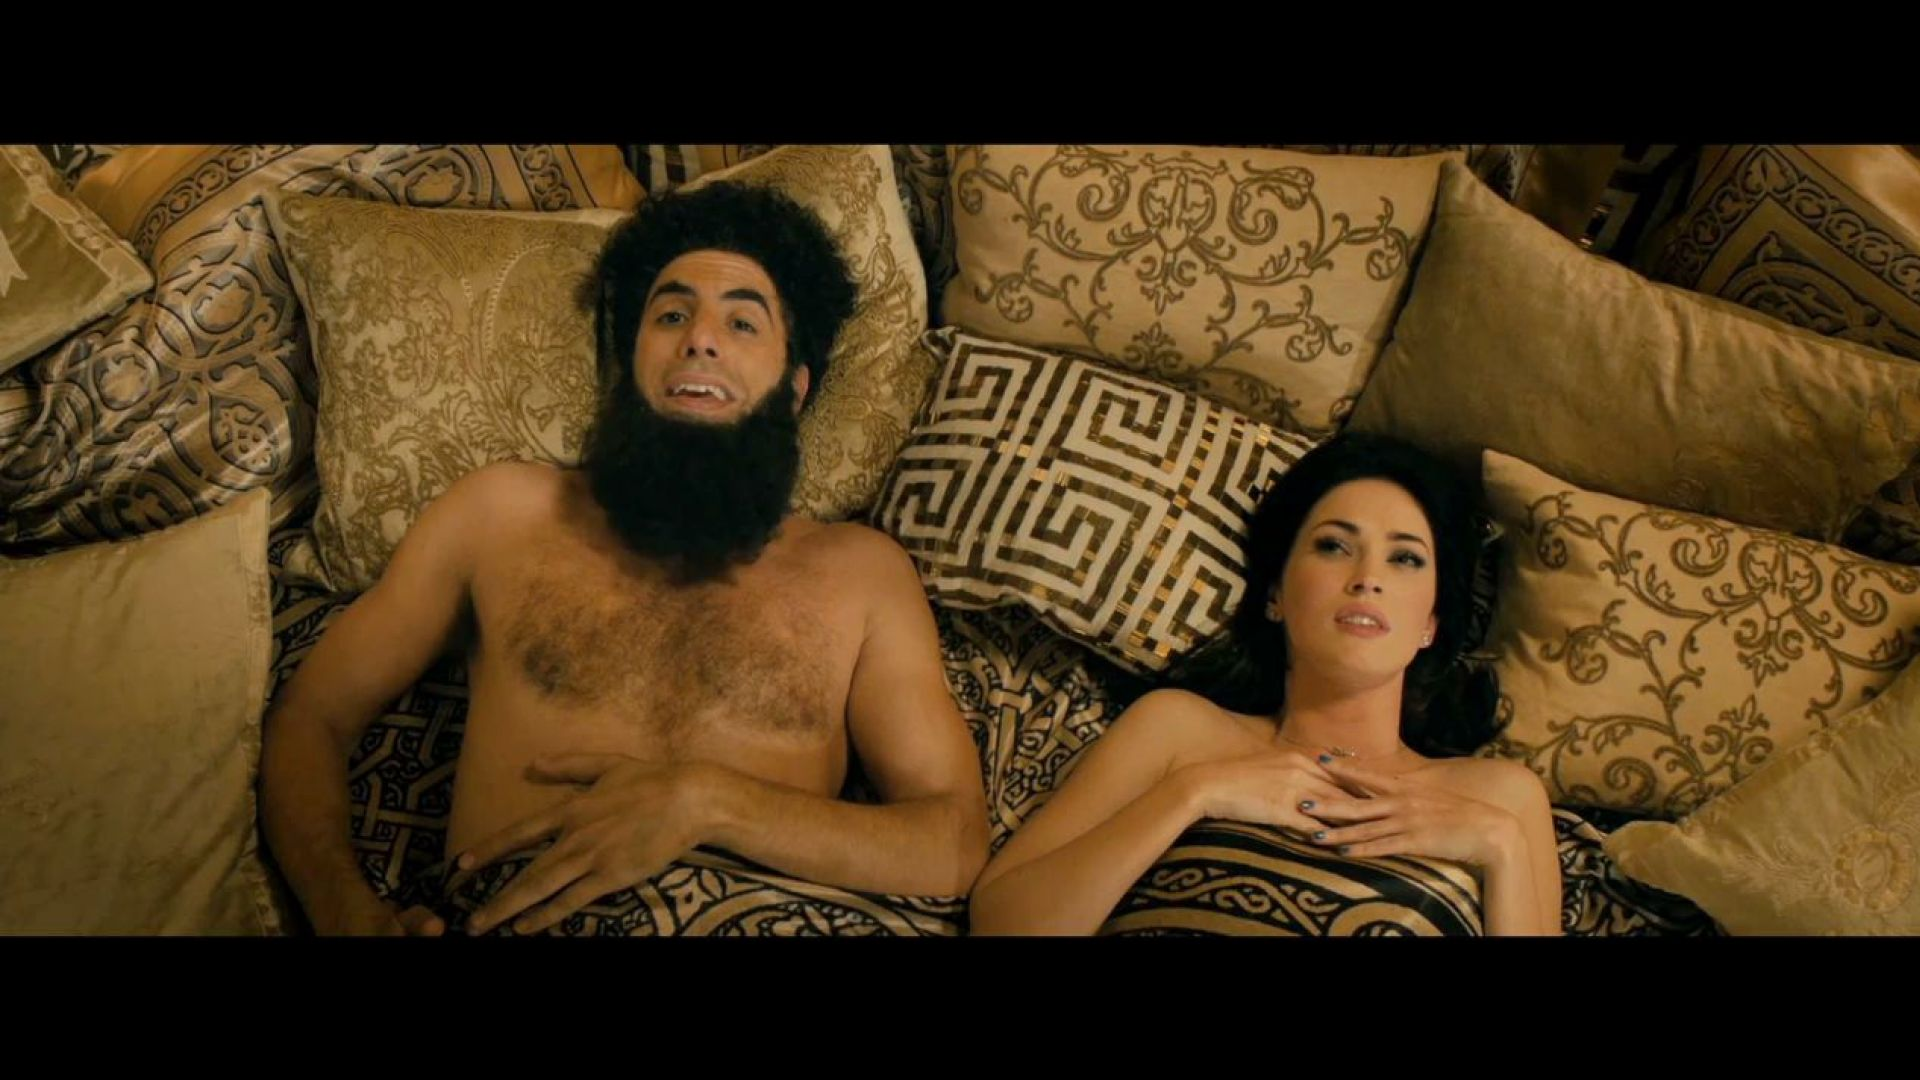 Megan Fox and general Aladeen in The Dictator